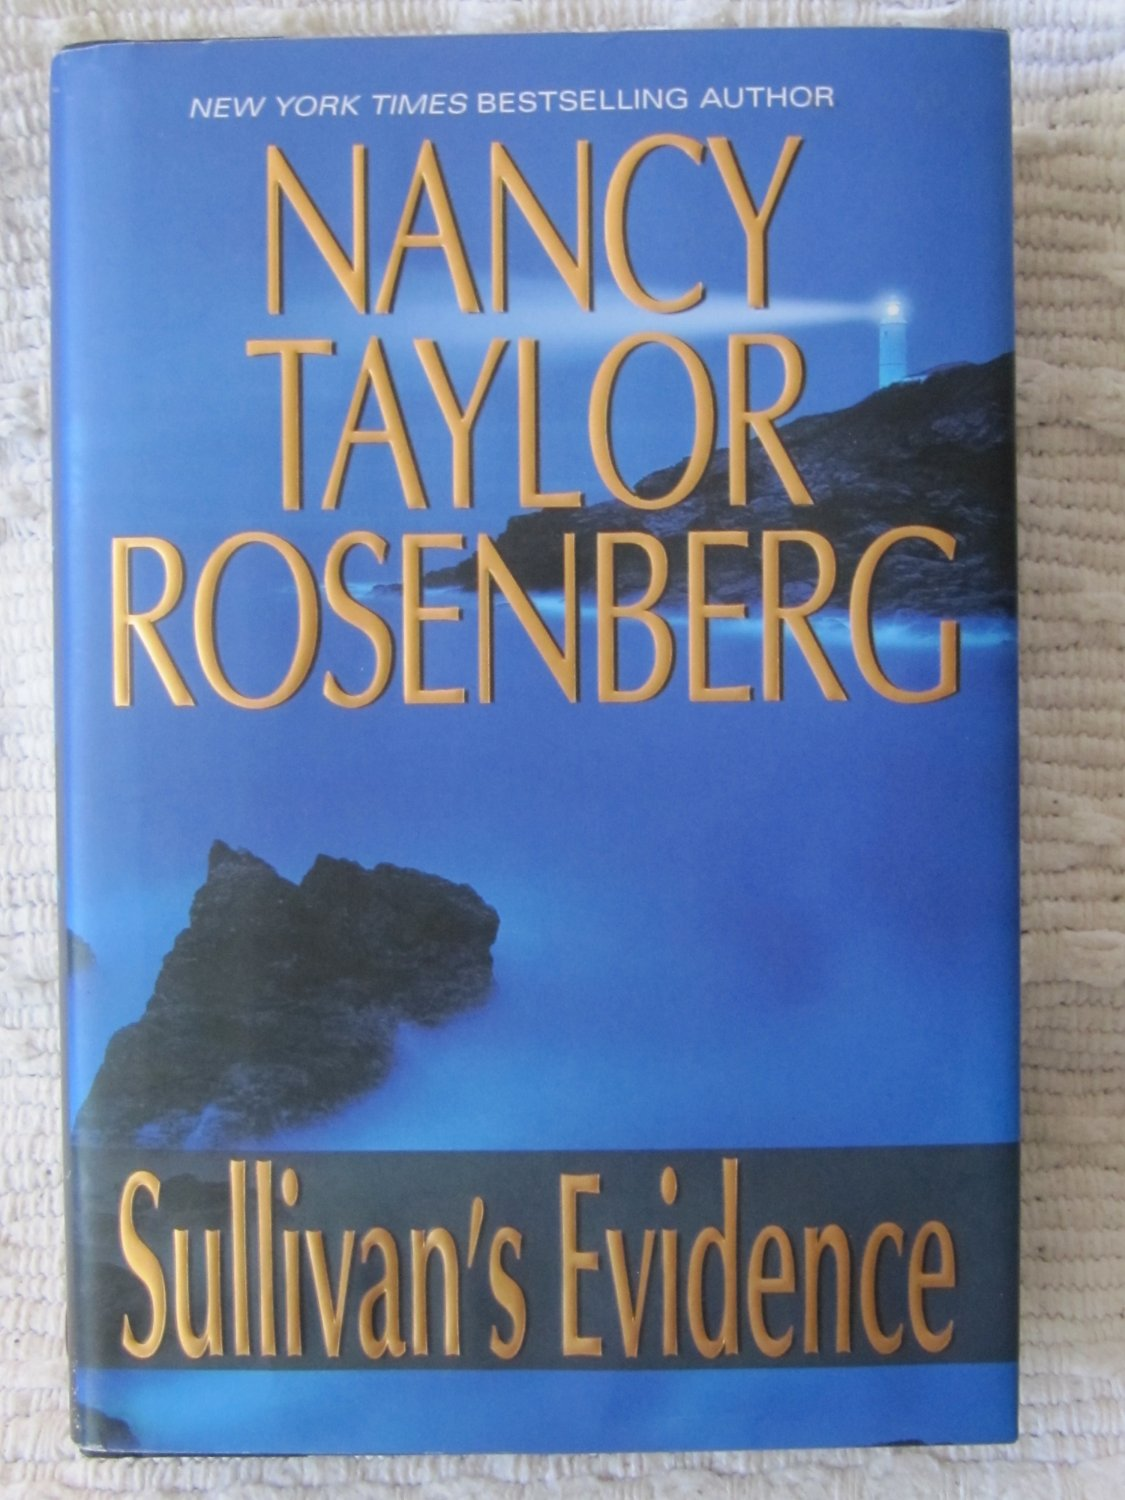 Sullivan's Evidence by Nancy Taylor Rosenberg Hardcover with Dust Jacket 1st Printing May 2006